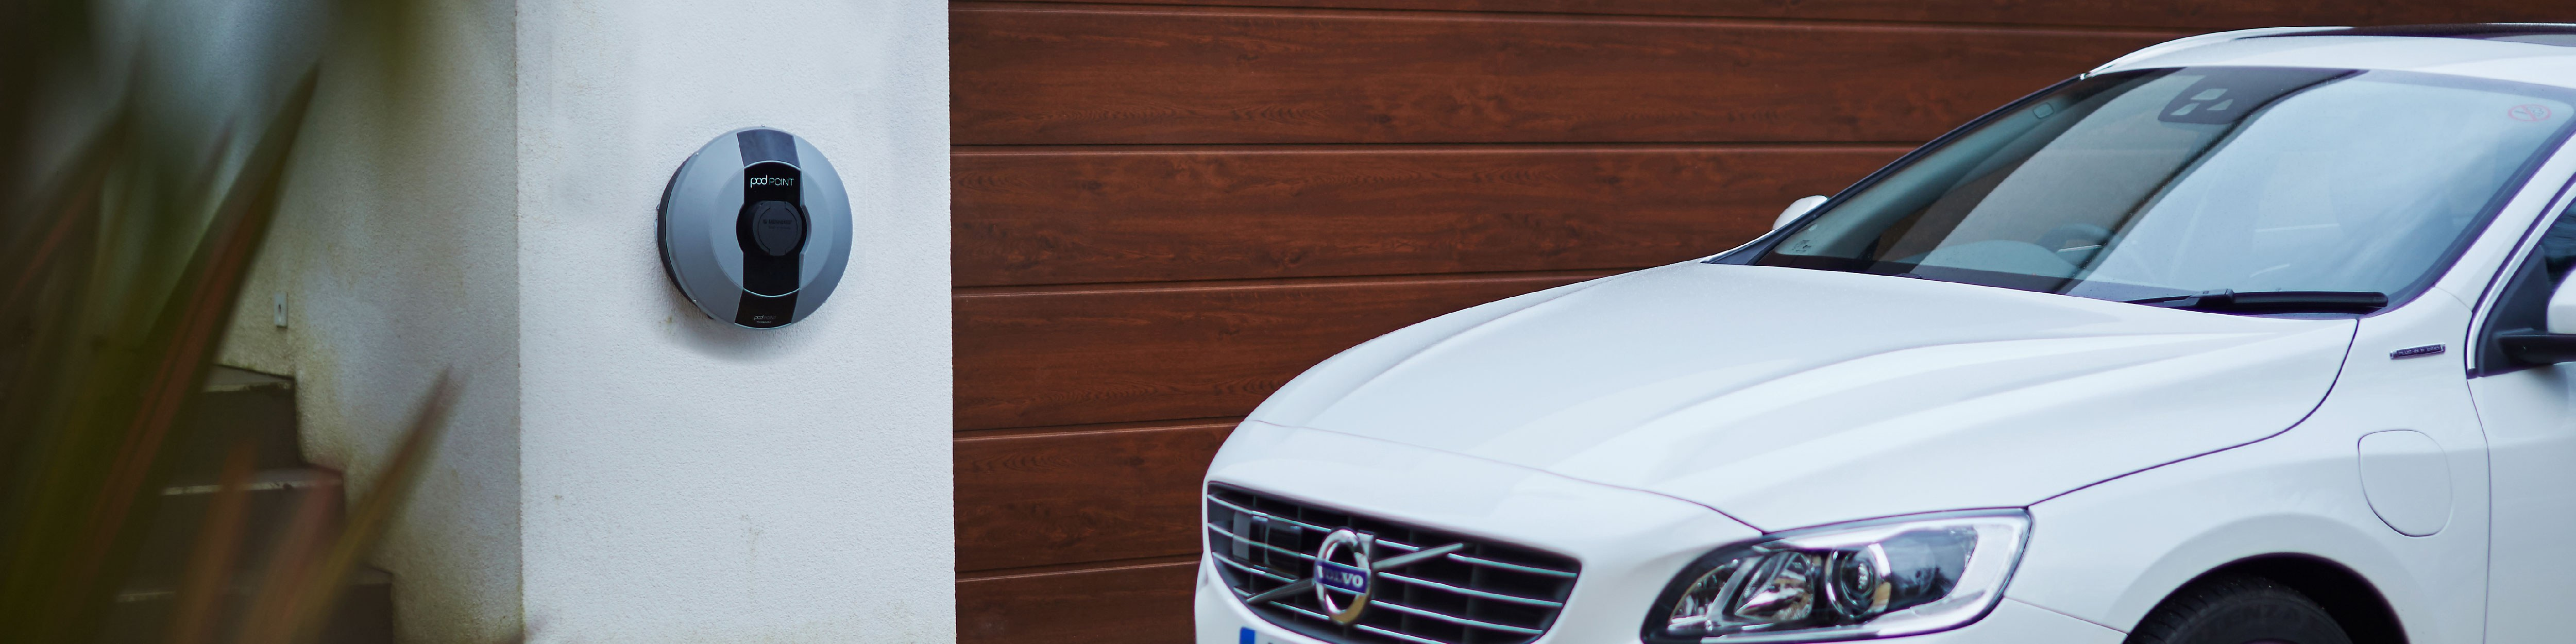 Preferred Supplier for Volvo Charging Stations in the UK